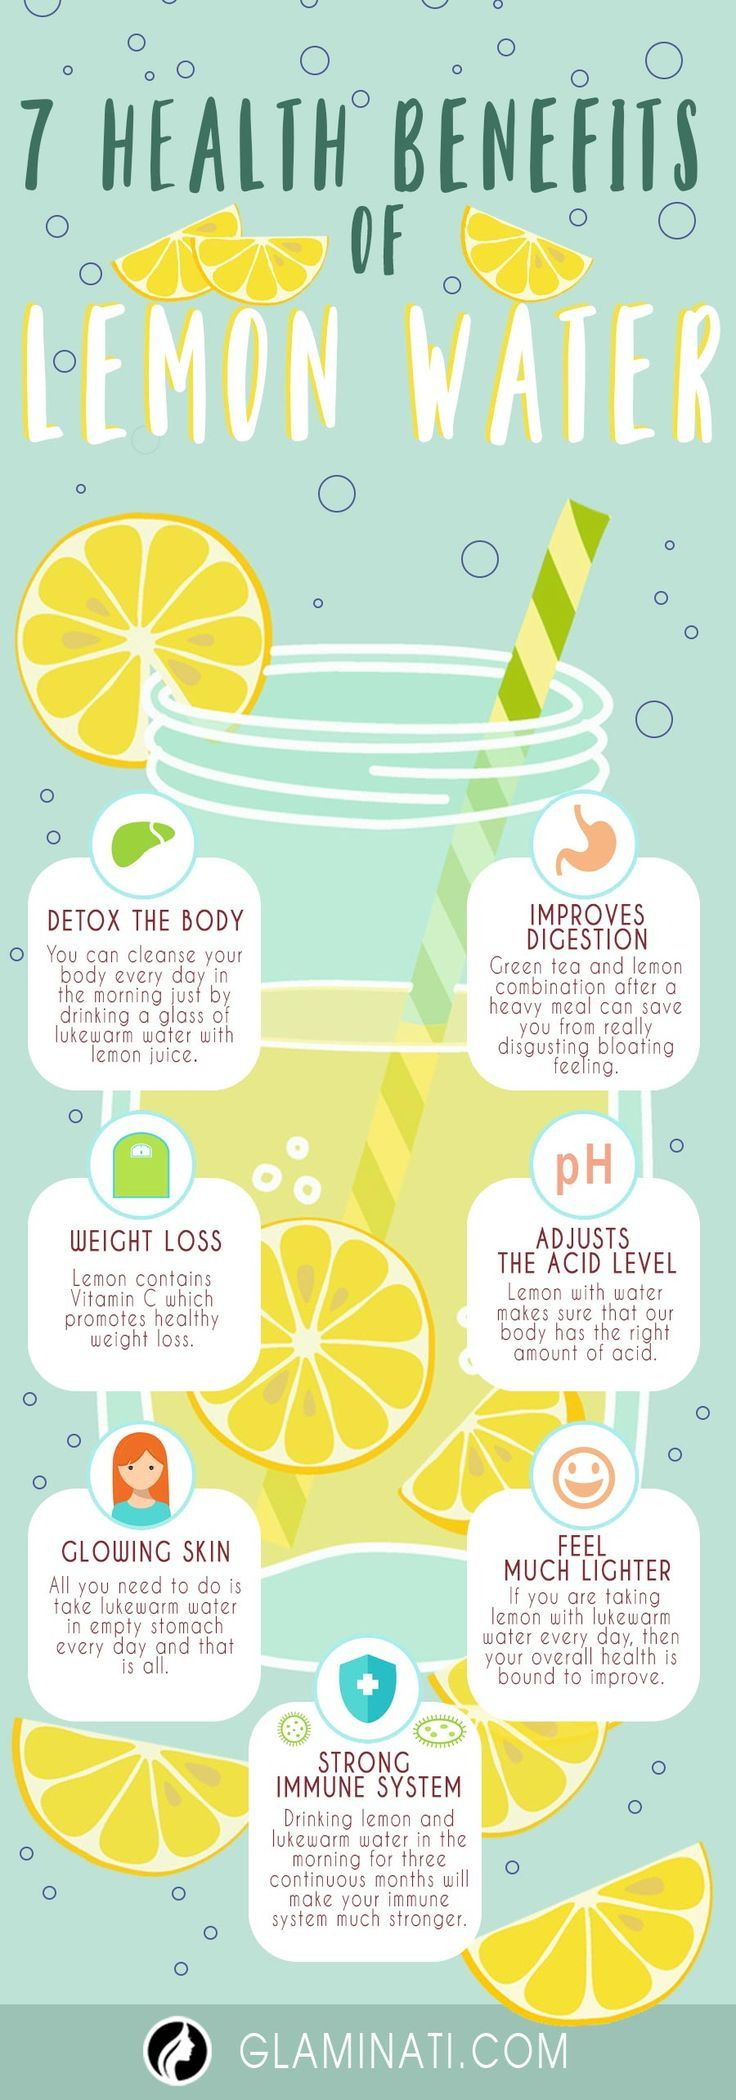 Health Benefits of Lemon Water ★ See more: http://glaminati.com/health-benefits-of-lemon-water/